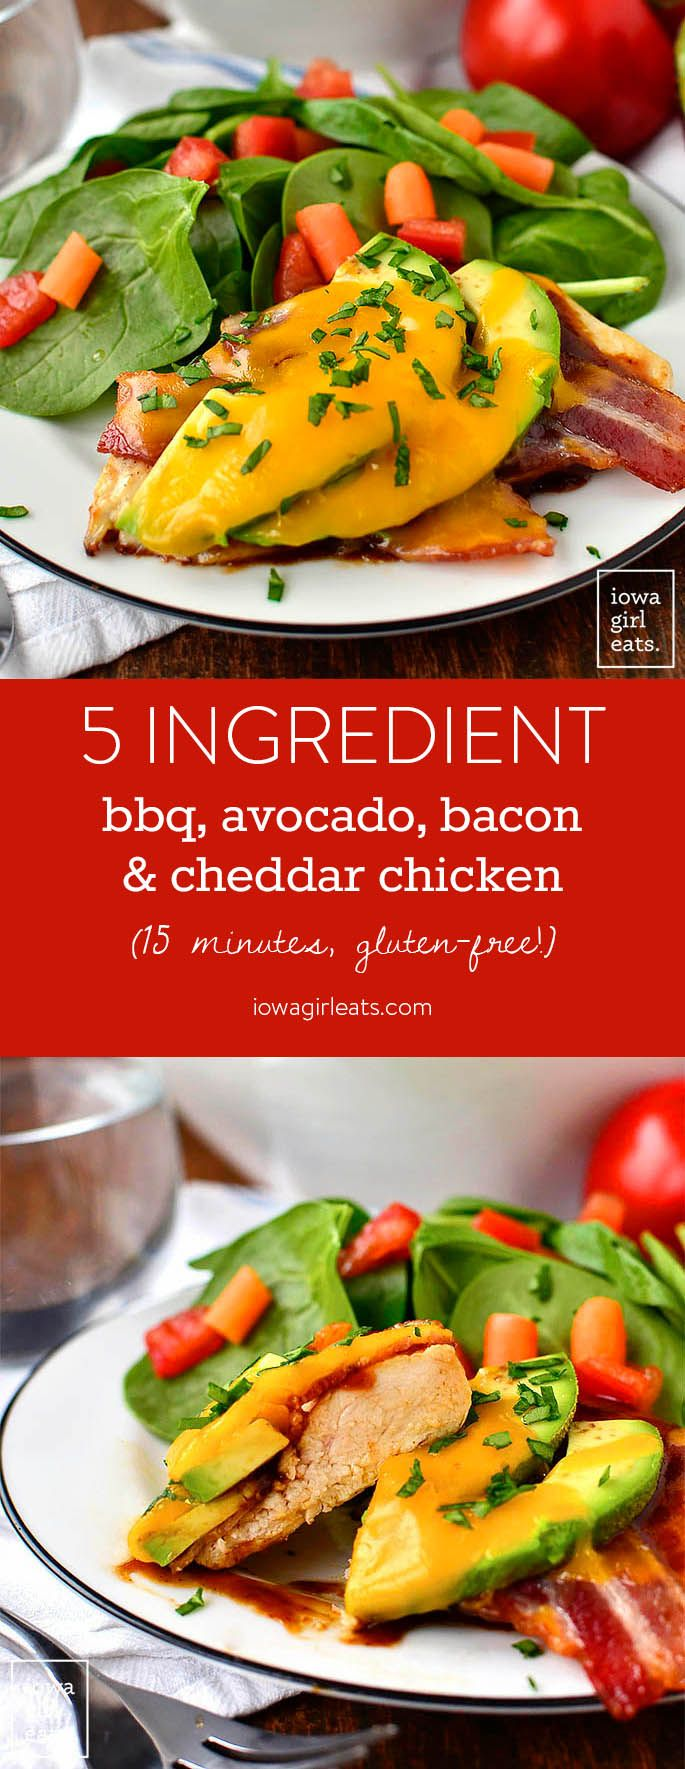 5 IngredientBBQ, Avocado, Bacon and Cheddar Chicken takes just 15 minutes to cook, and is totally craveable. This easy, gluten-free dinner recipe is such a winner! | iowagirleats.com